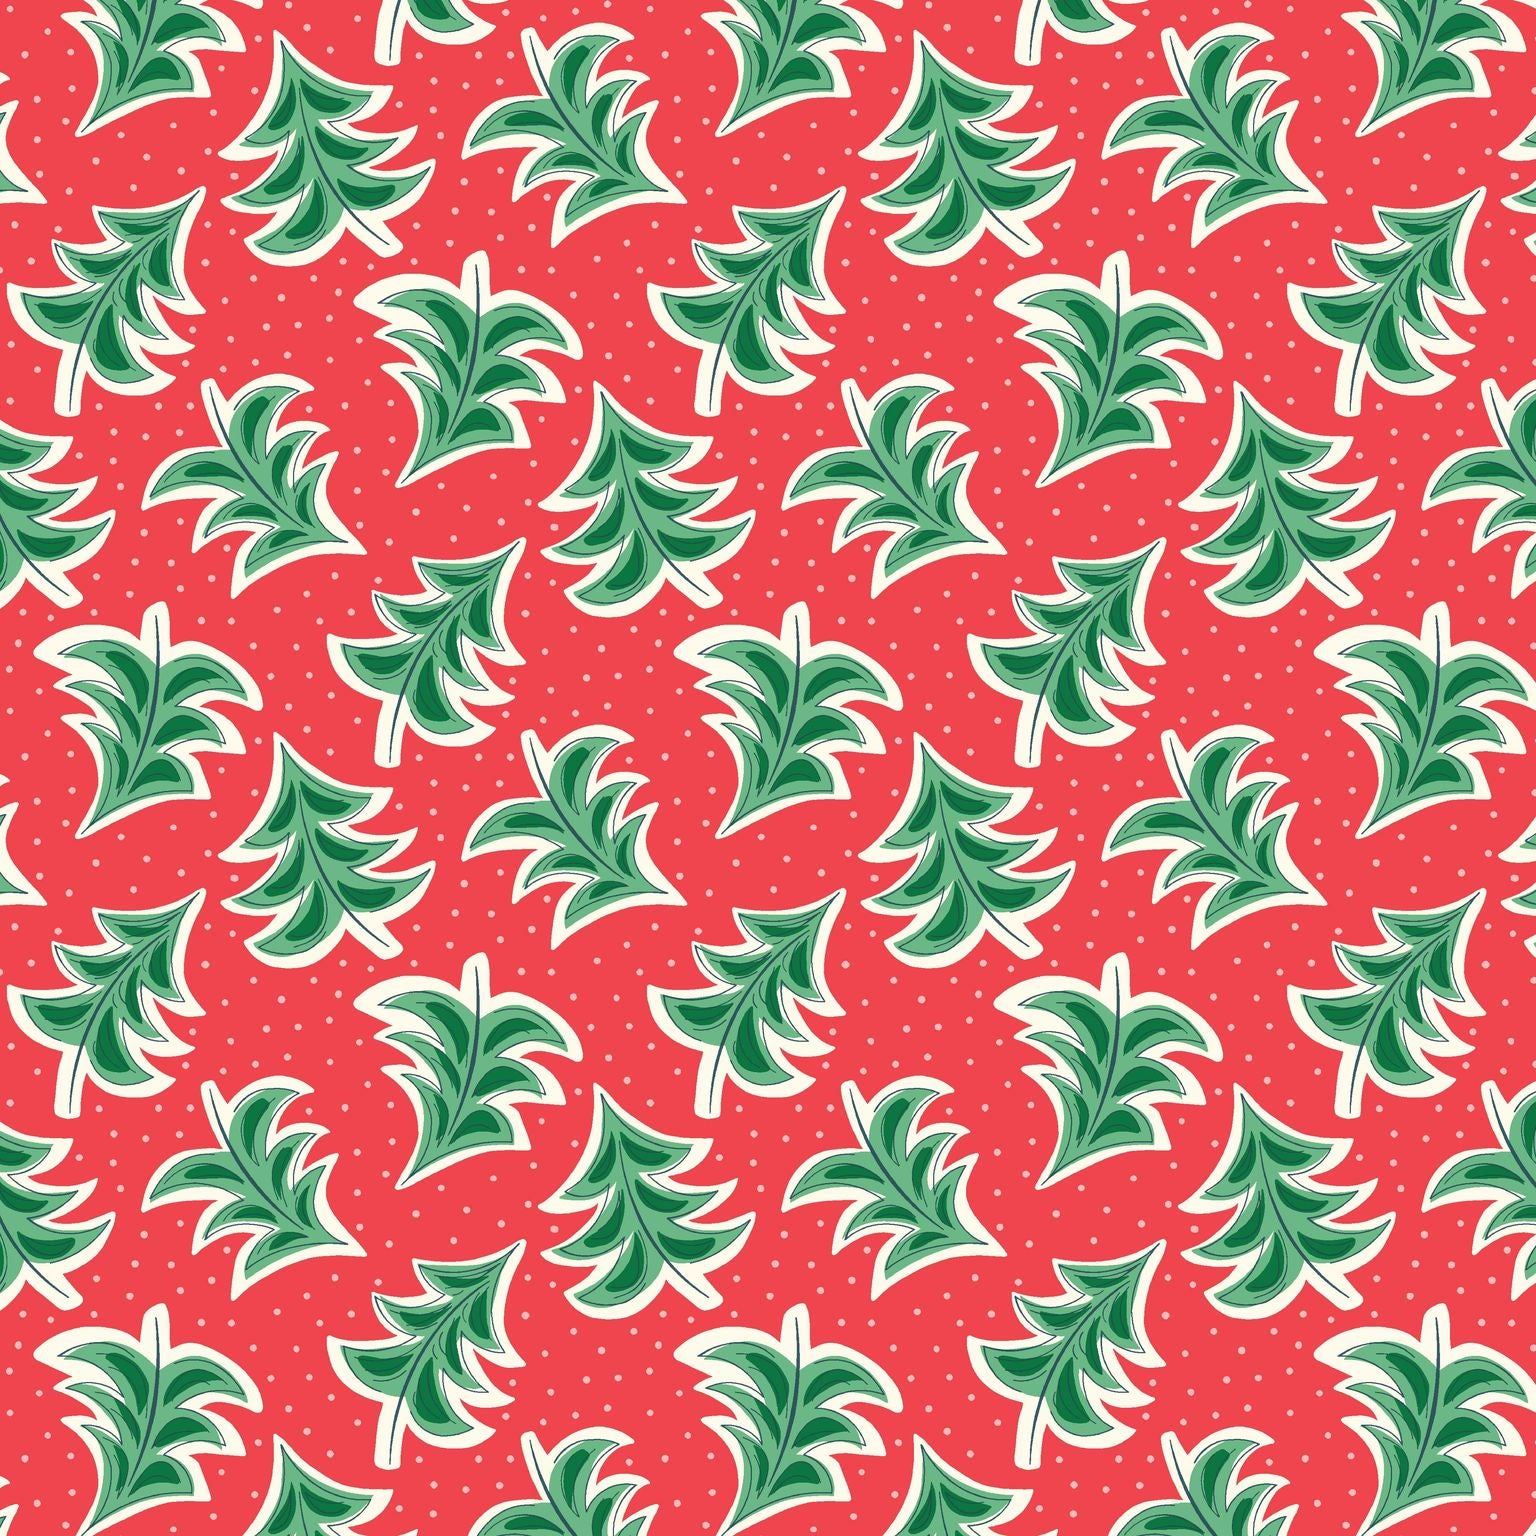 Spread Christmas cheer with this whimsical array of perfectly trimmed trees. you can almost hear a festive tune playing in the background as the trees dance rhythmically across a dusting of snowflake confetti